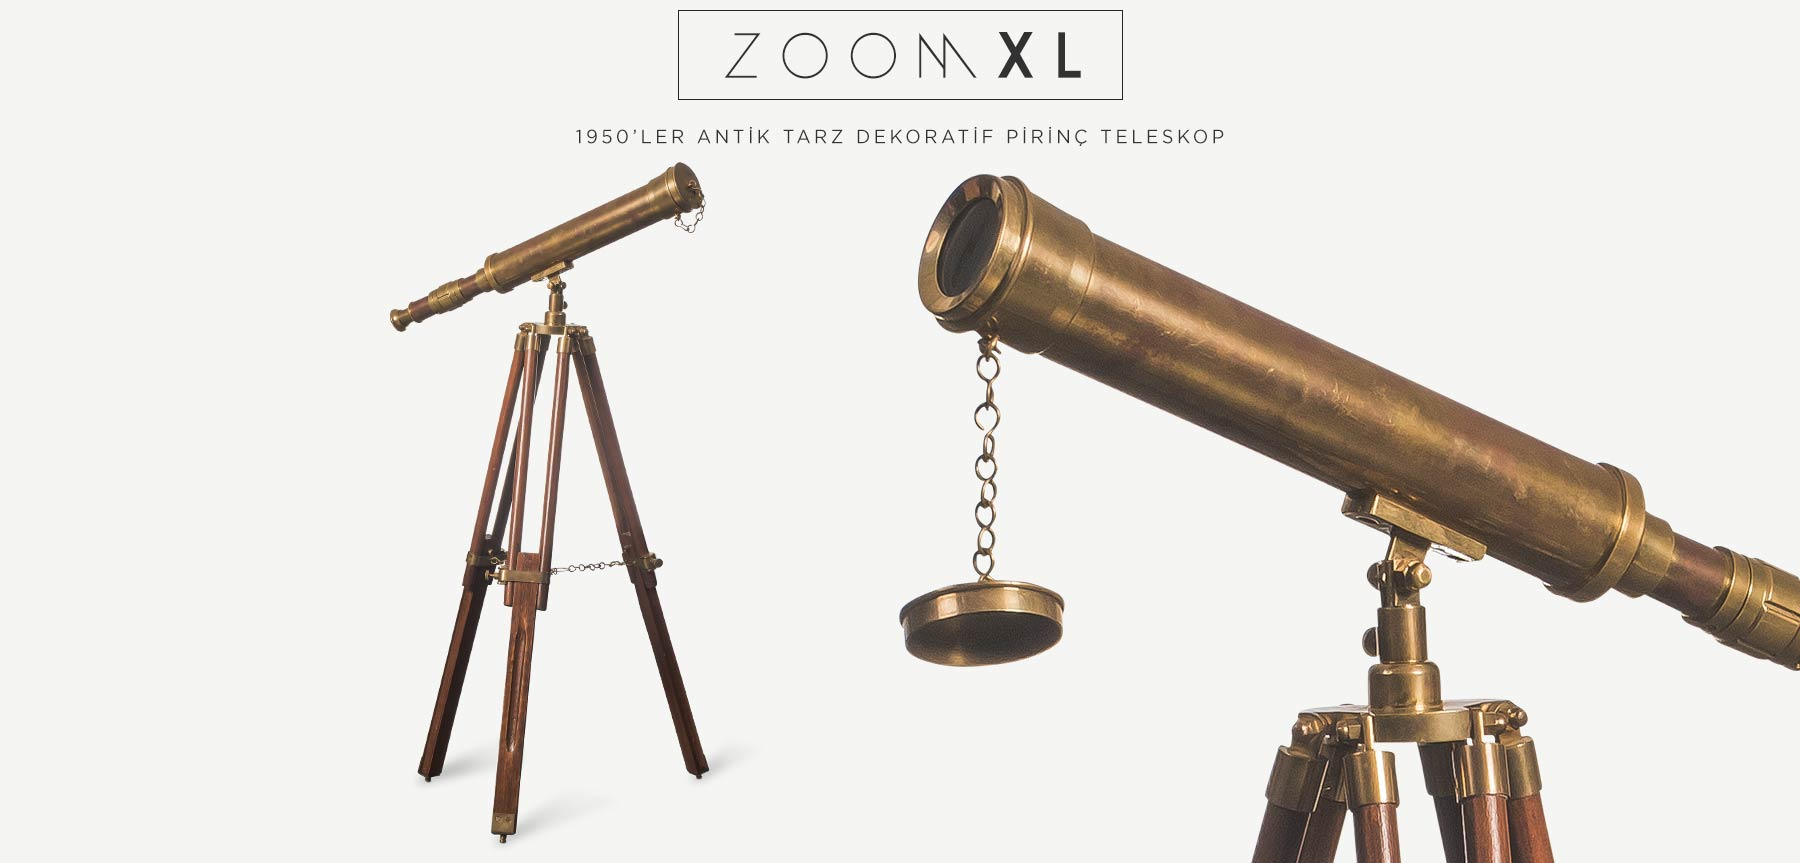 ZOOM XL ANTİK PİRİNÇ TELESKOP'in resmi